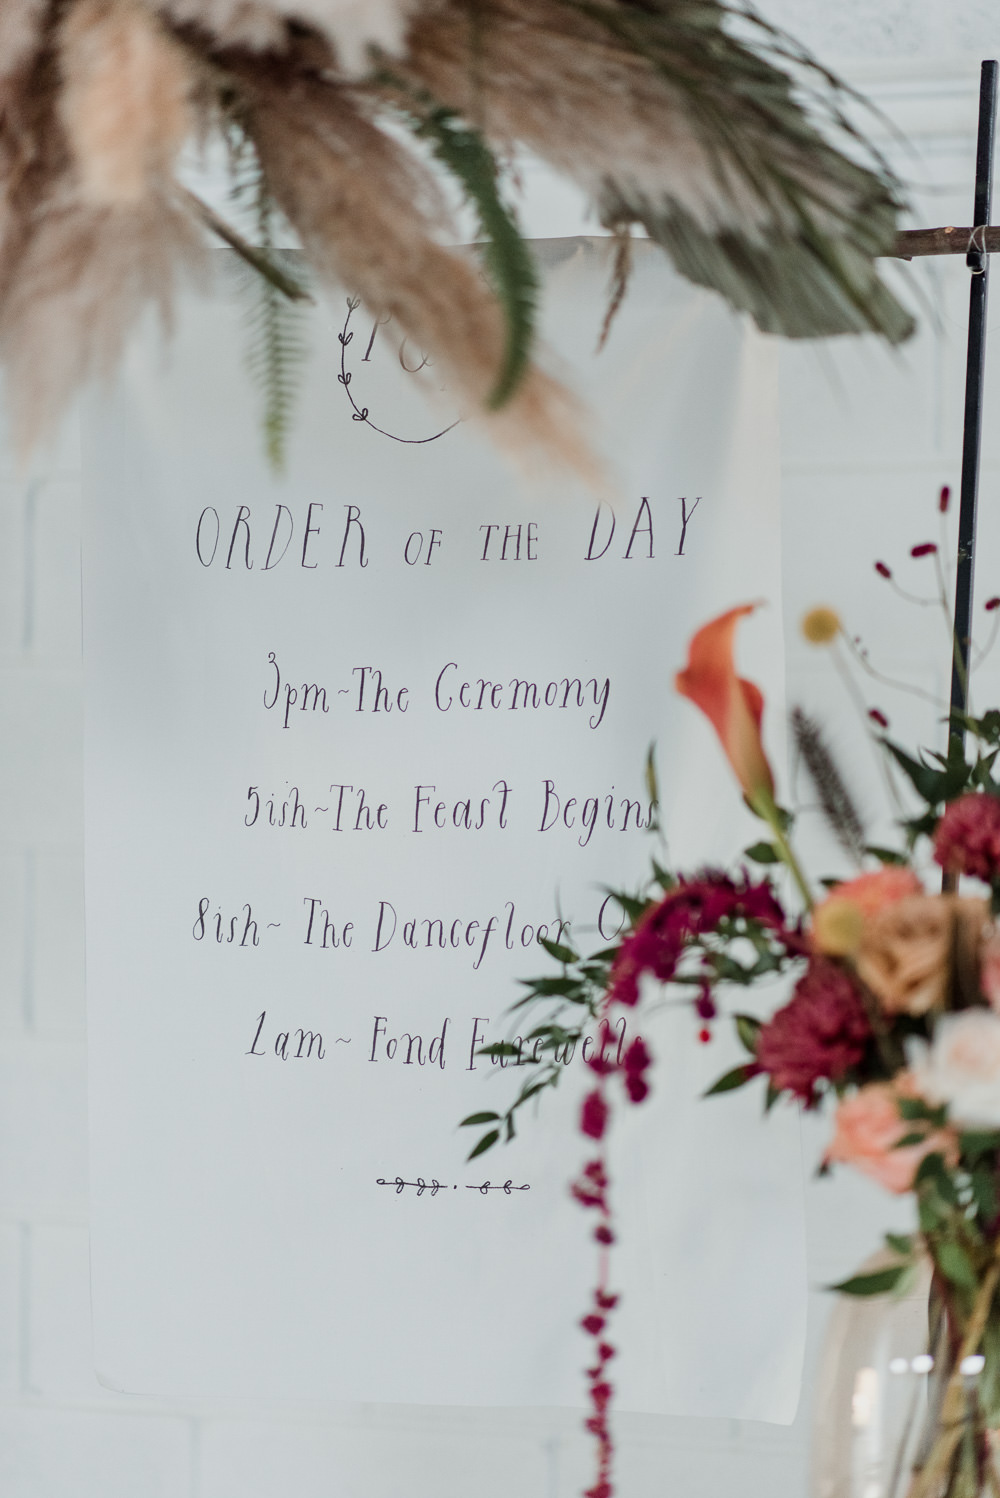 Fabric Banner Sign Signage Order of the Day Calligraphy 1970 Retro Mid Century Wedding Ideas Laura Martha Photography